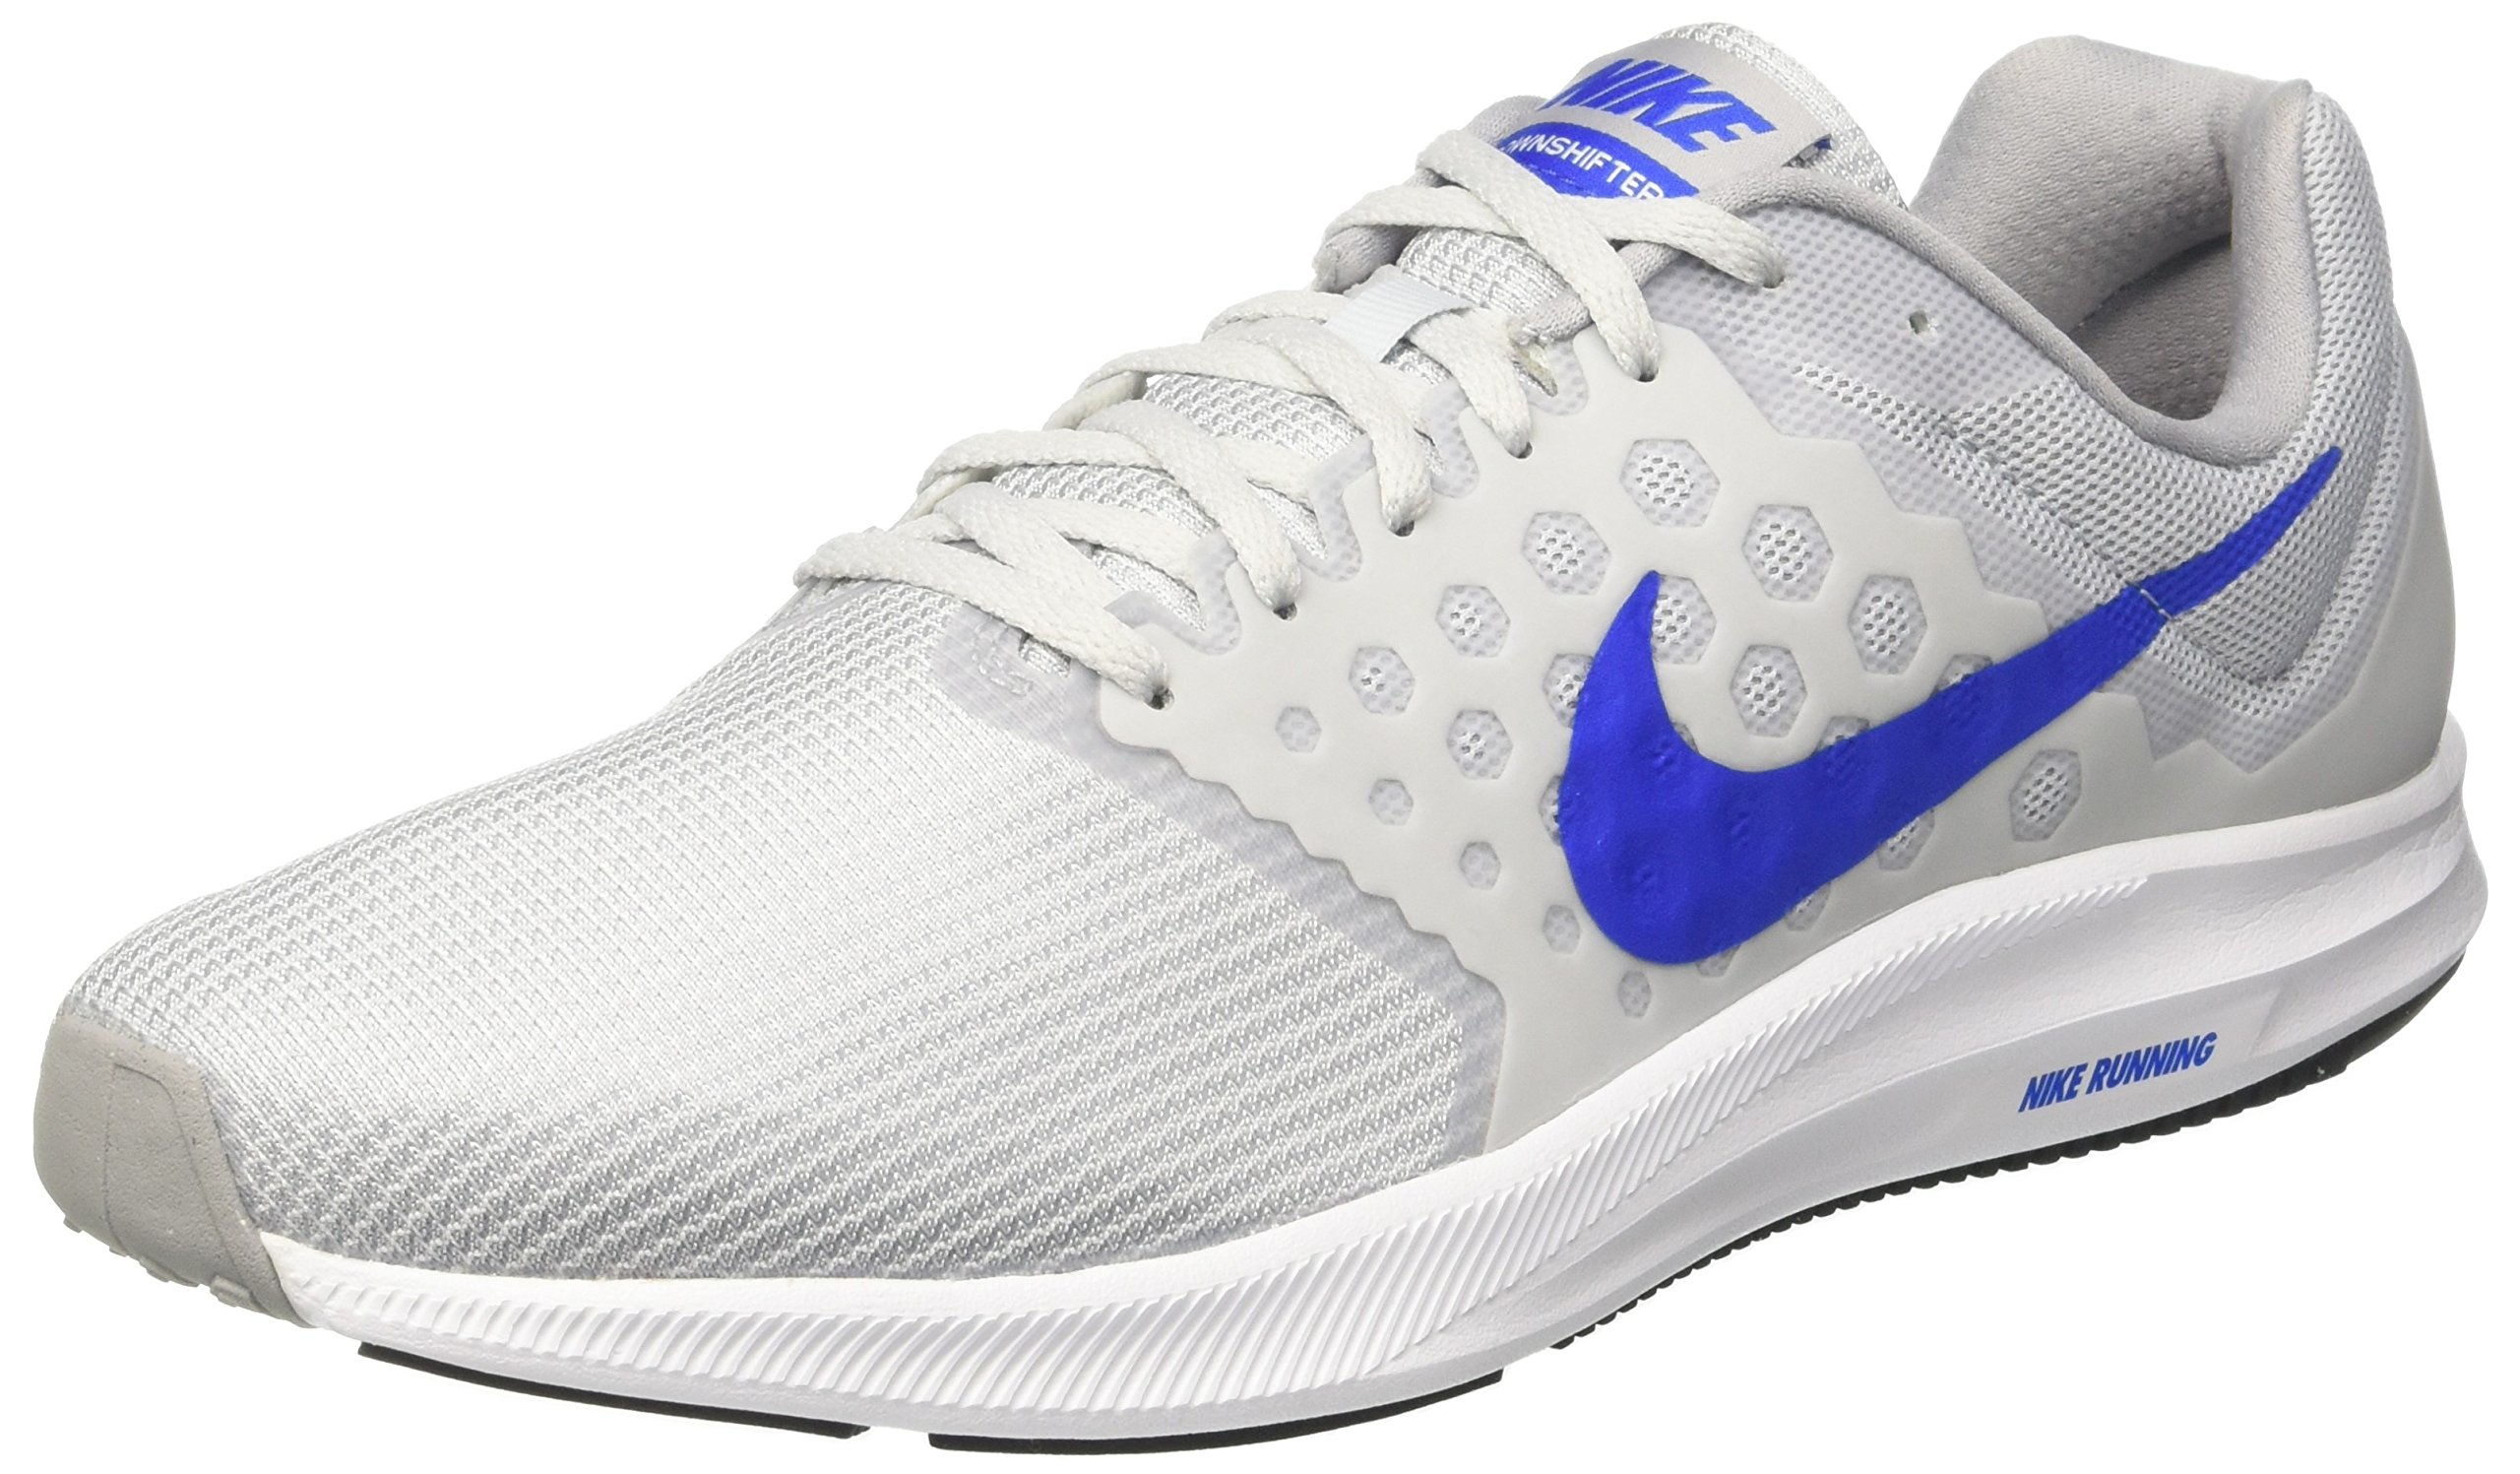 c5467ae1741b1 Galleon - NIKE Men s Downshifter 7 Running Shoe Pure Platinum Hyper Cobalt Wolf  Grey Size 9 M US